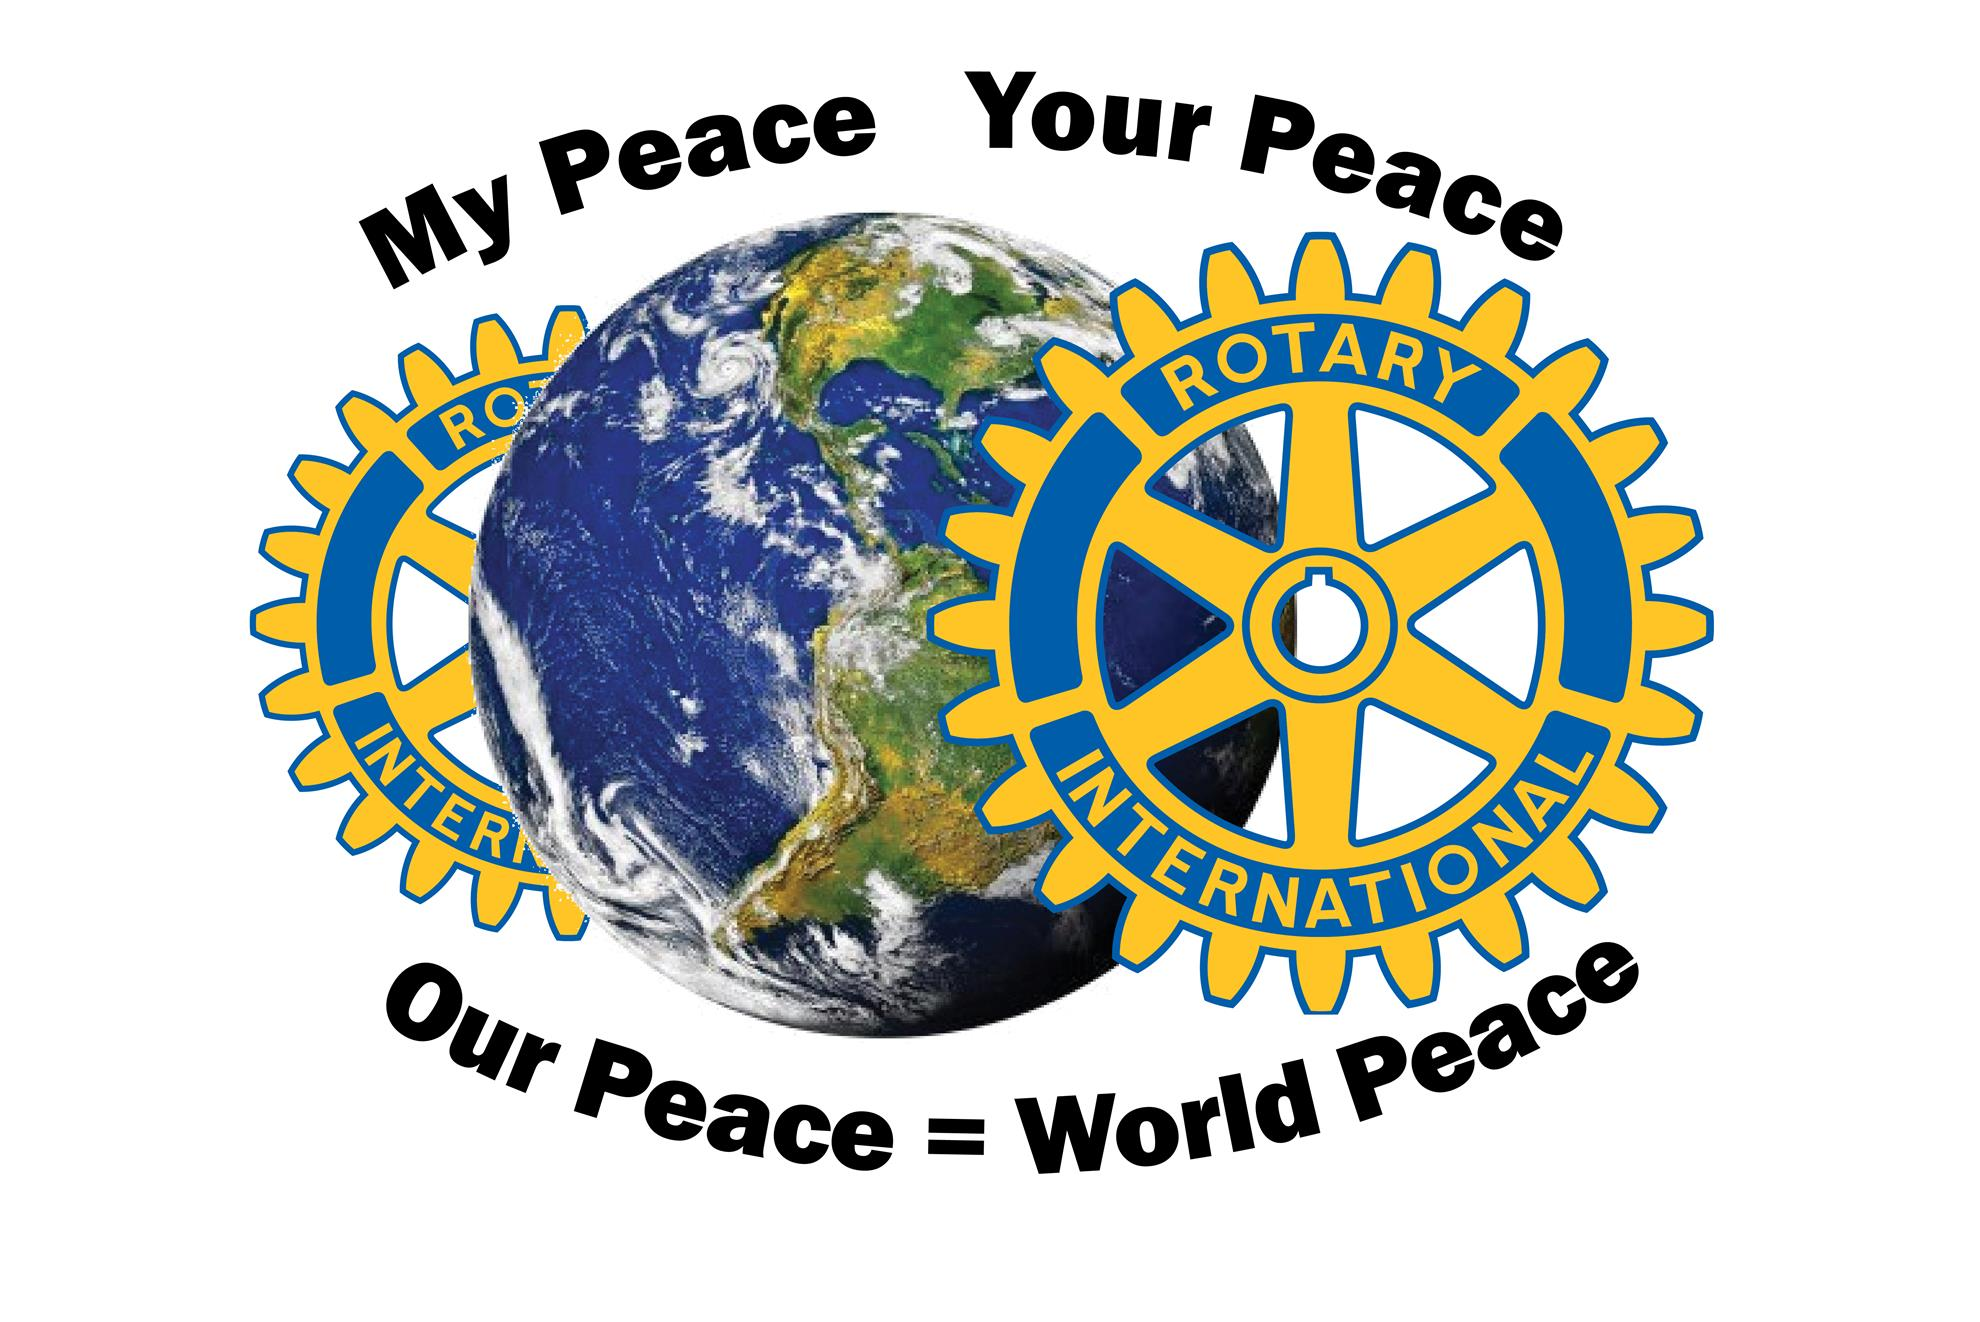 On November 12 2017 District 7190 Rotarians Will Host A Peace Summit For Youth In Mechanicville